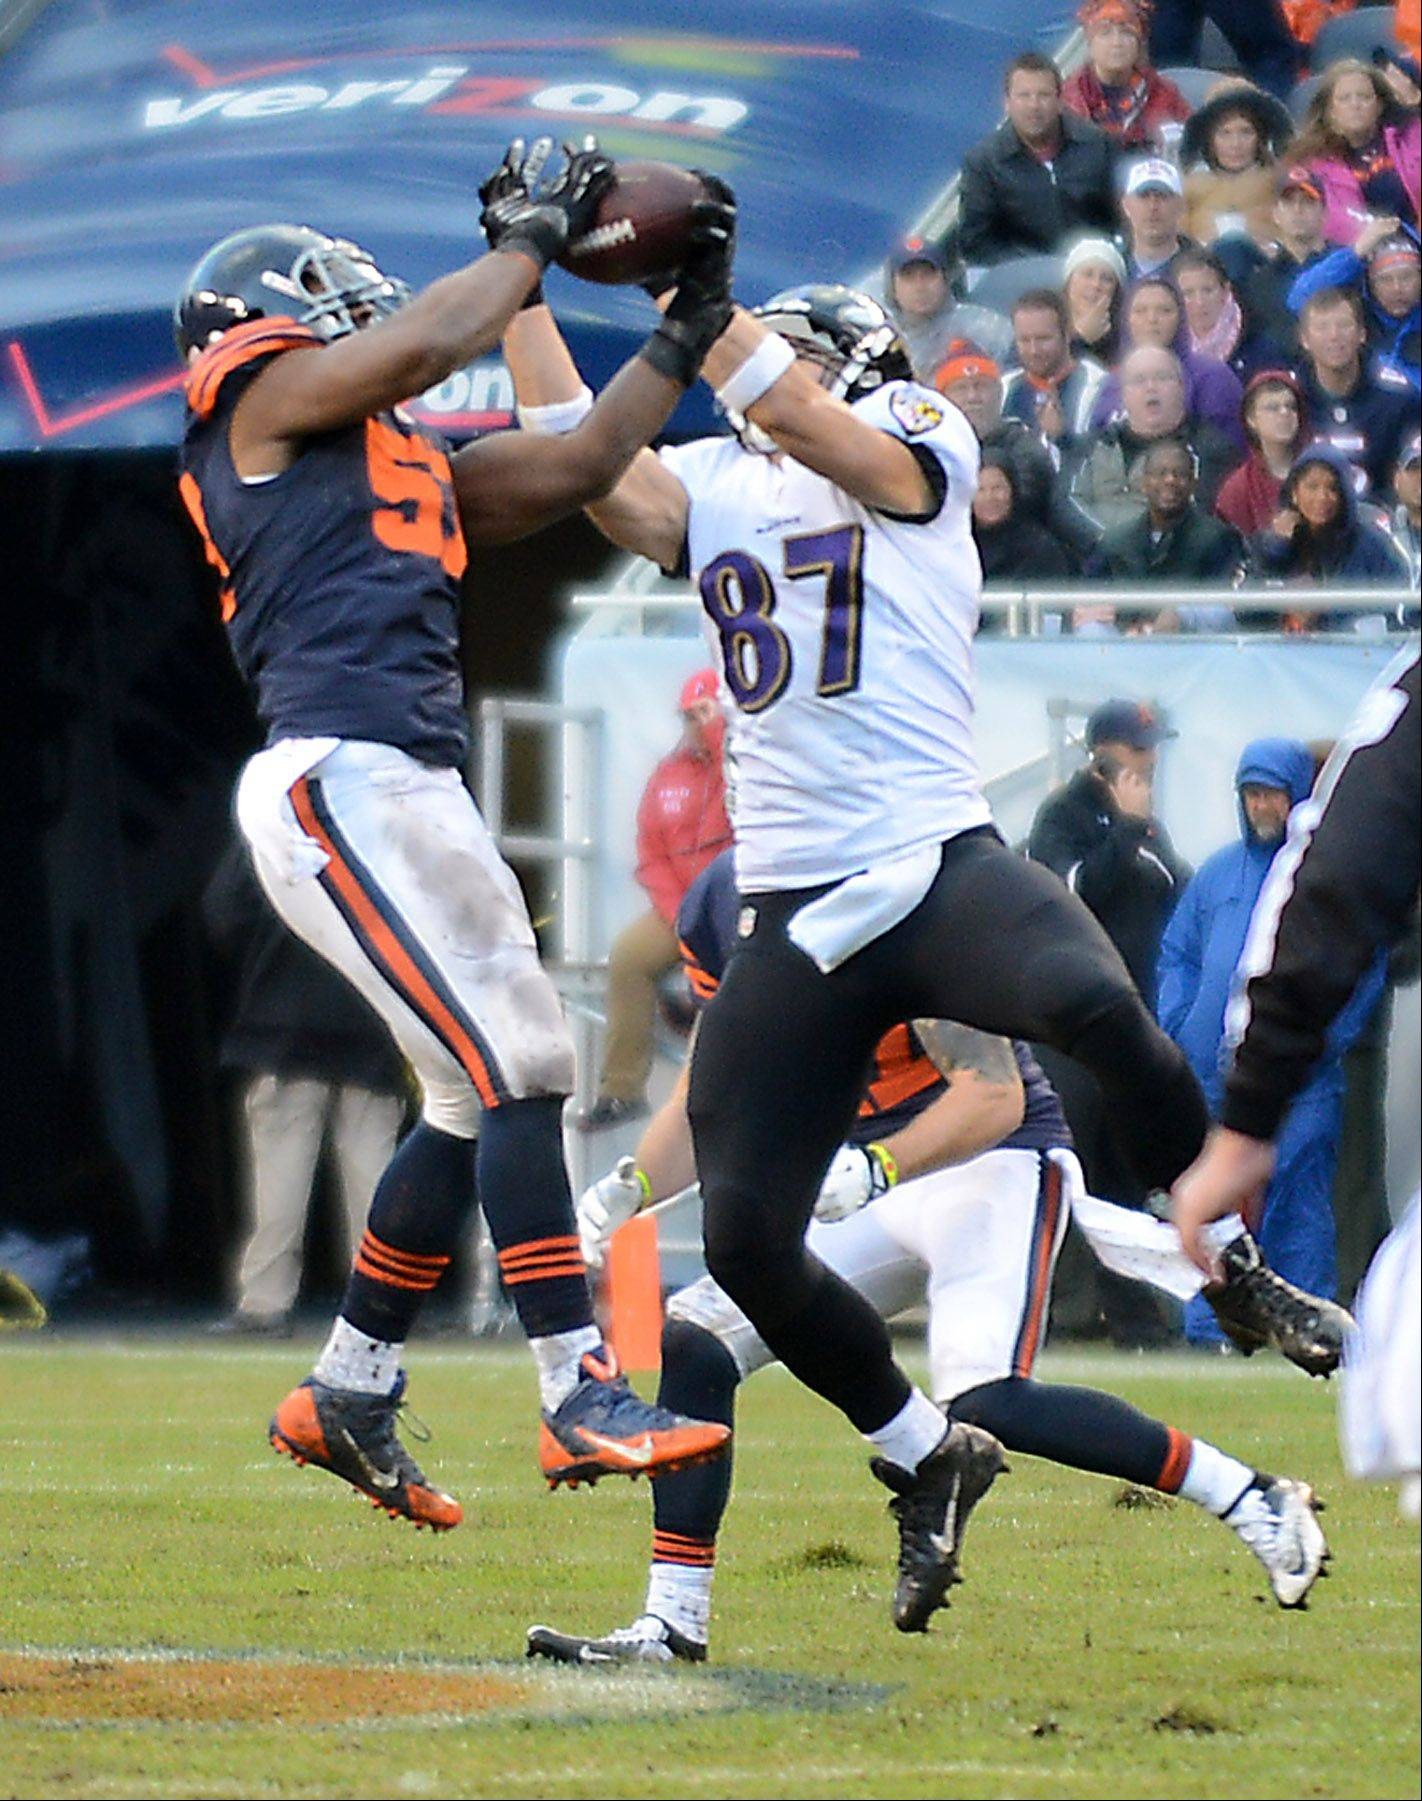 Chicago Bears inside linebacker Jon Bostic (57) grabs an interception in front of Baltimore Ravens tight end Dallas Clark (87) during Sunday's game in Chicago.